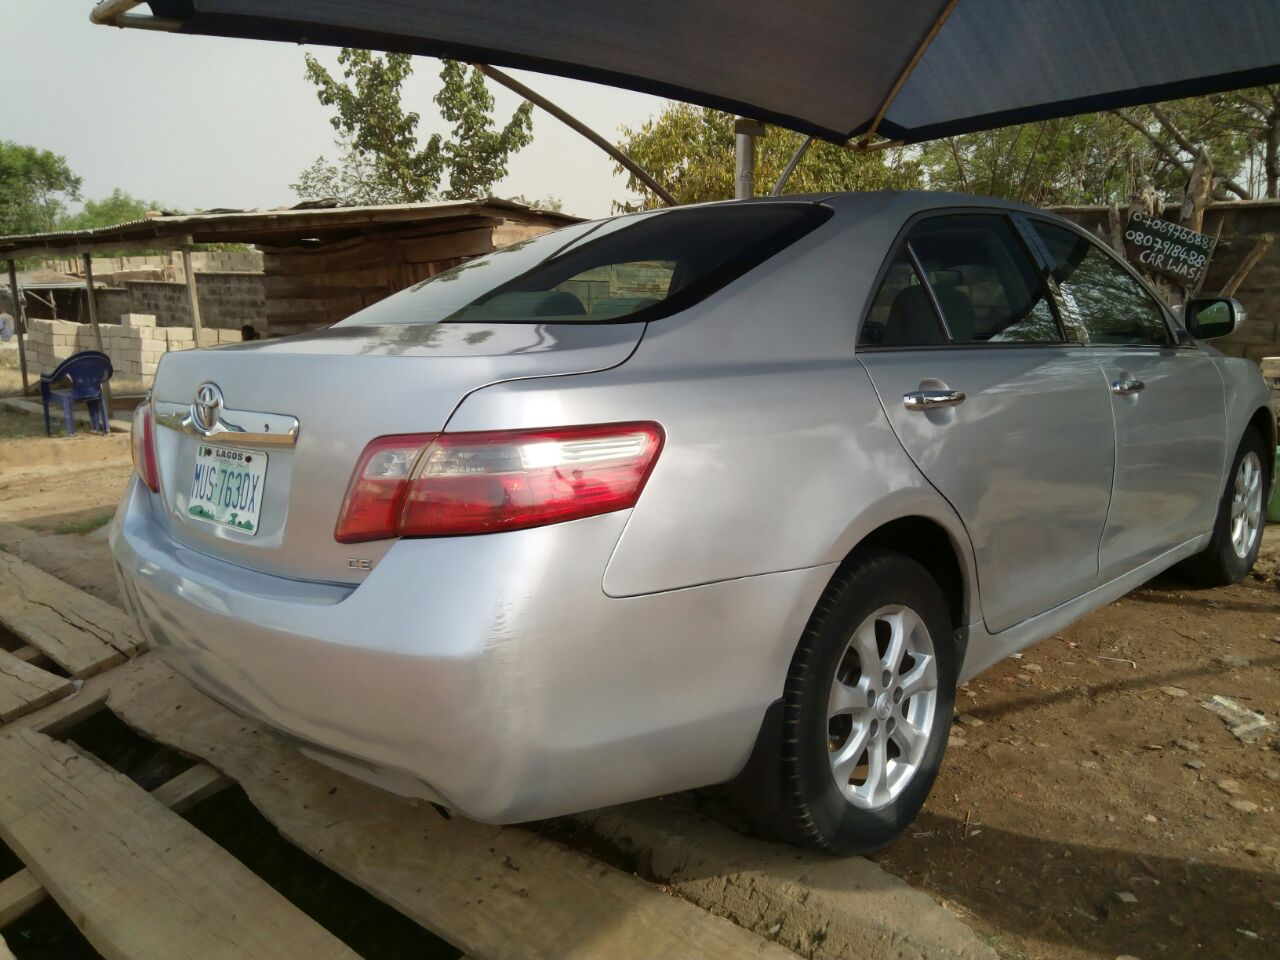 topeka video used camry toyota dailymotion for car jzr sale